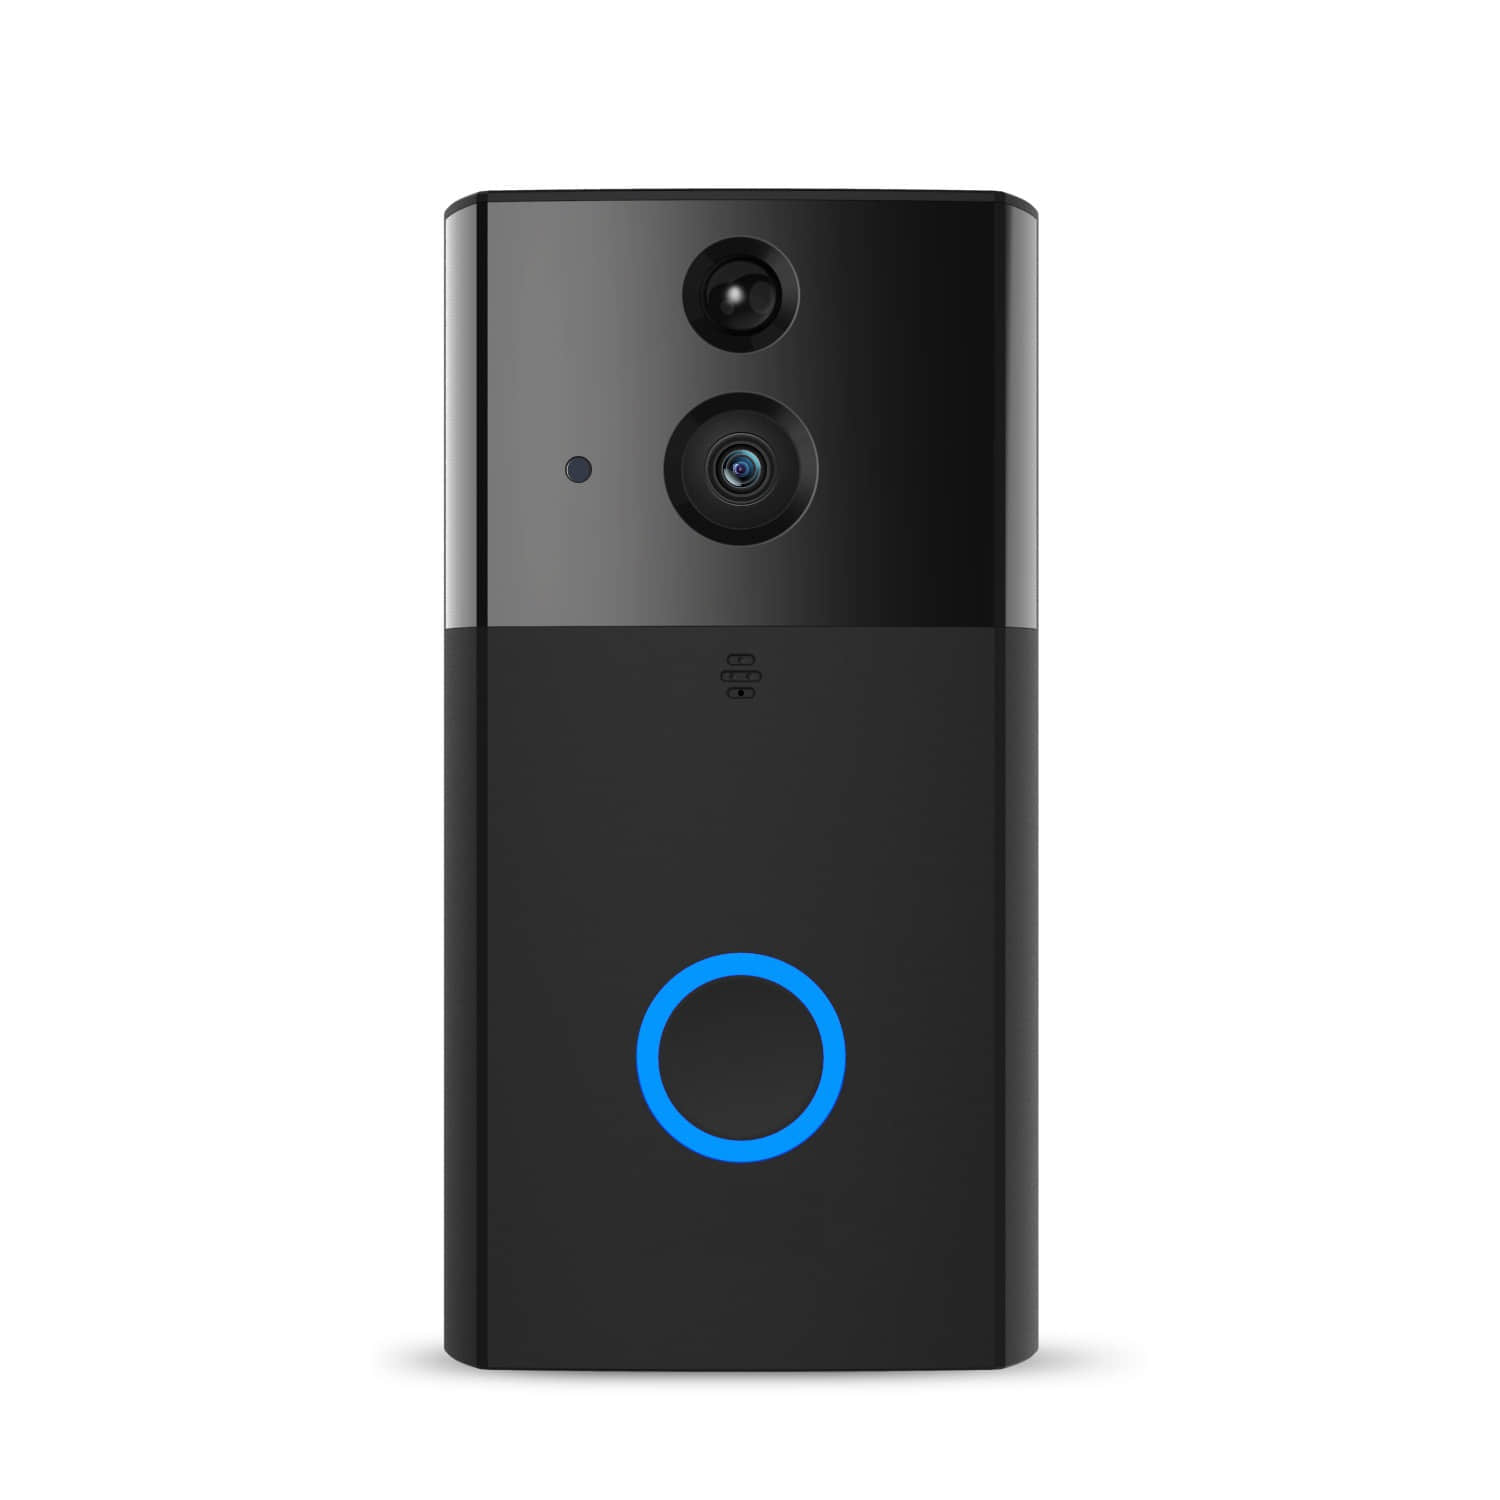 WiFi Video Doorbell Camera works with Alexa